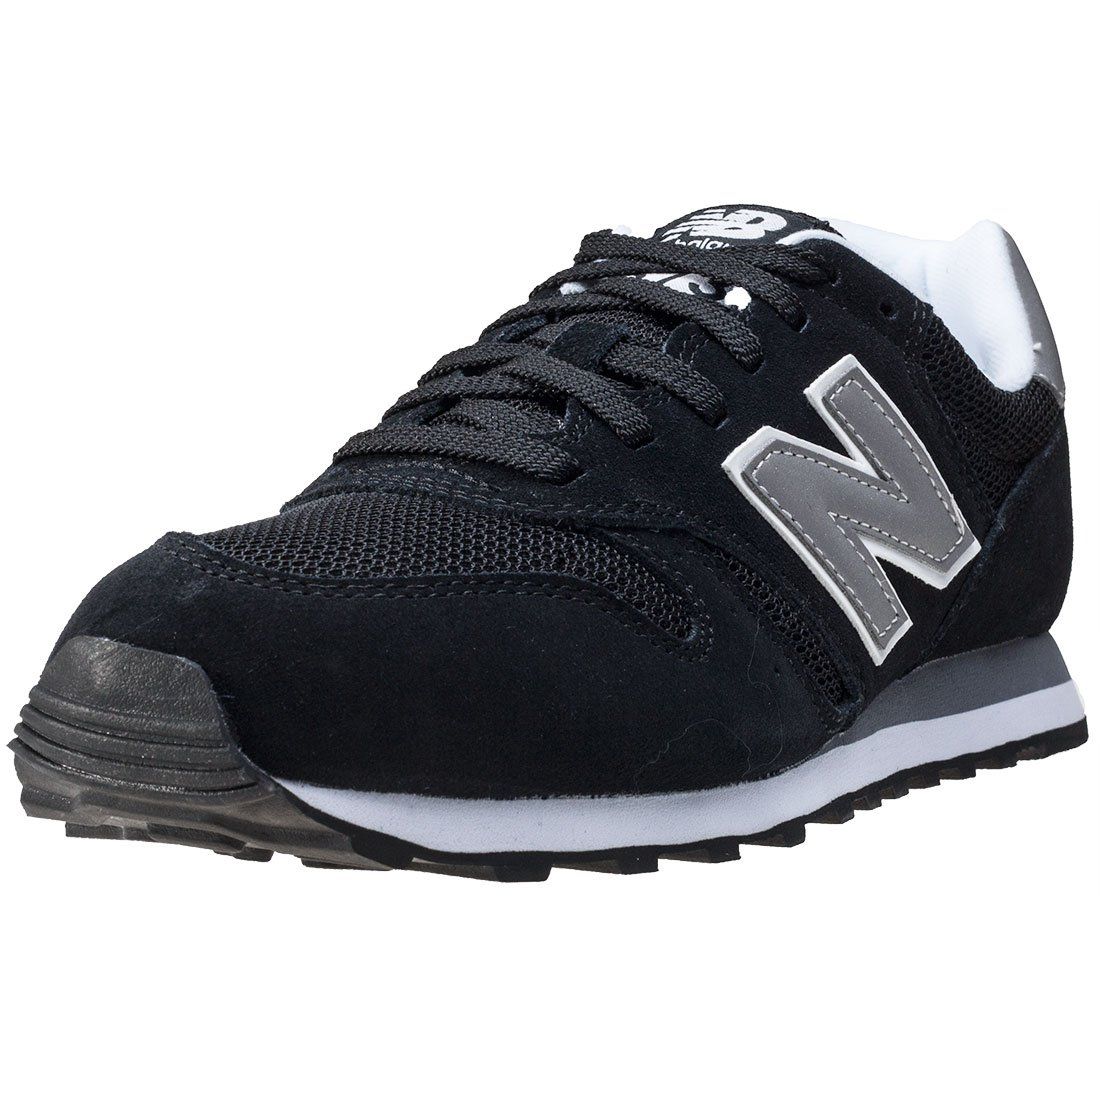 premium selection a0d8d 6fcdc New Balance Men's 373 Core Trainers